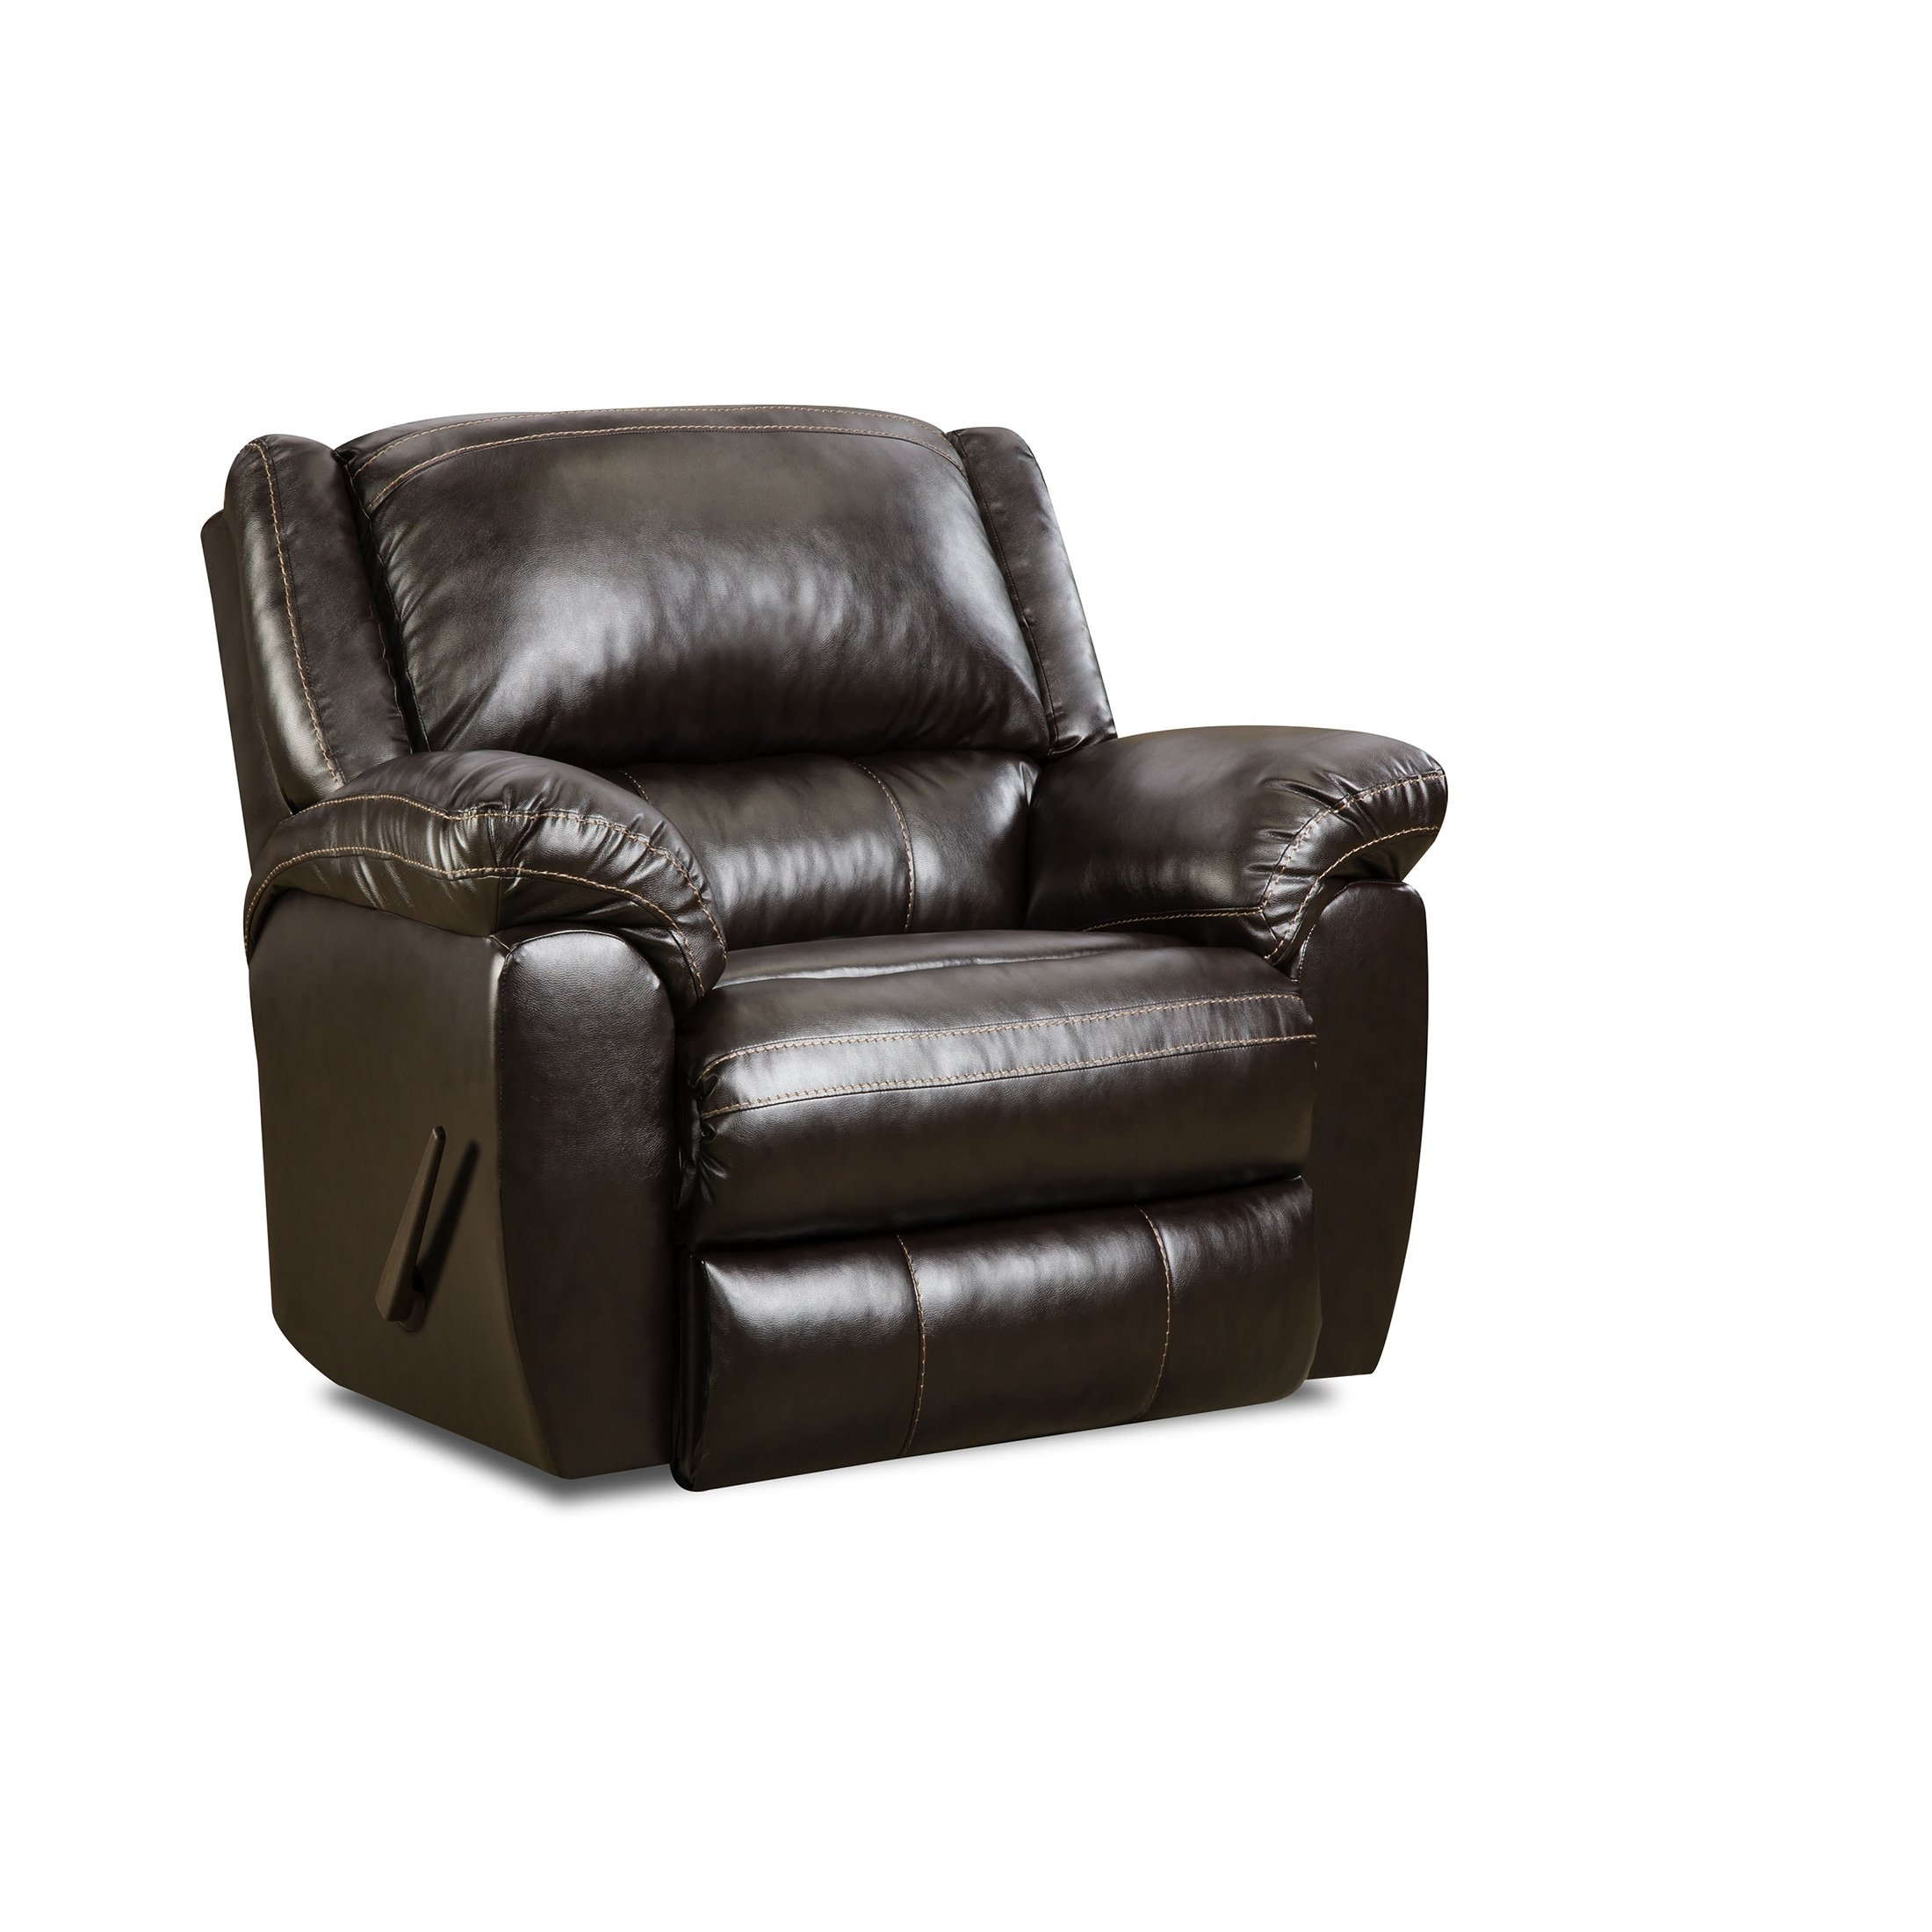 Simmons Upholstery 50433BR-19 Bingo Rocker Recliner, Brown by Simmons Upholstery